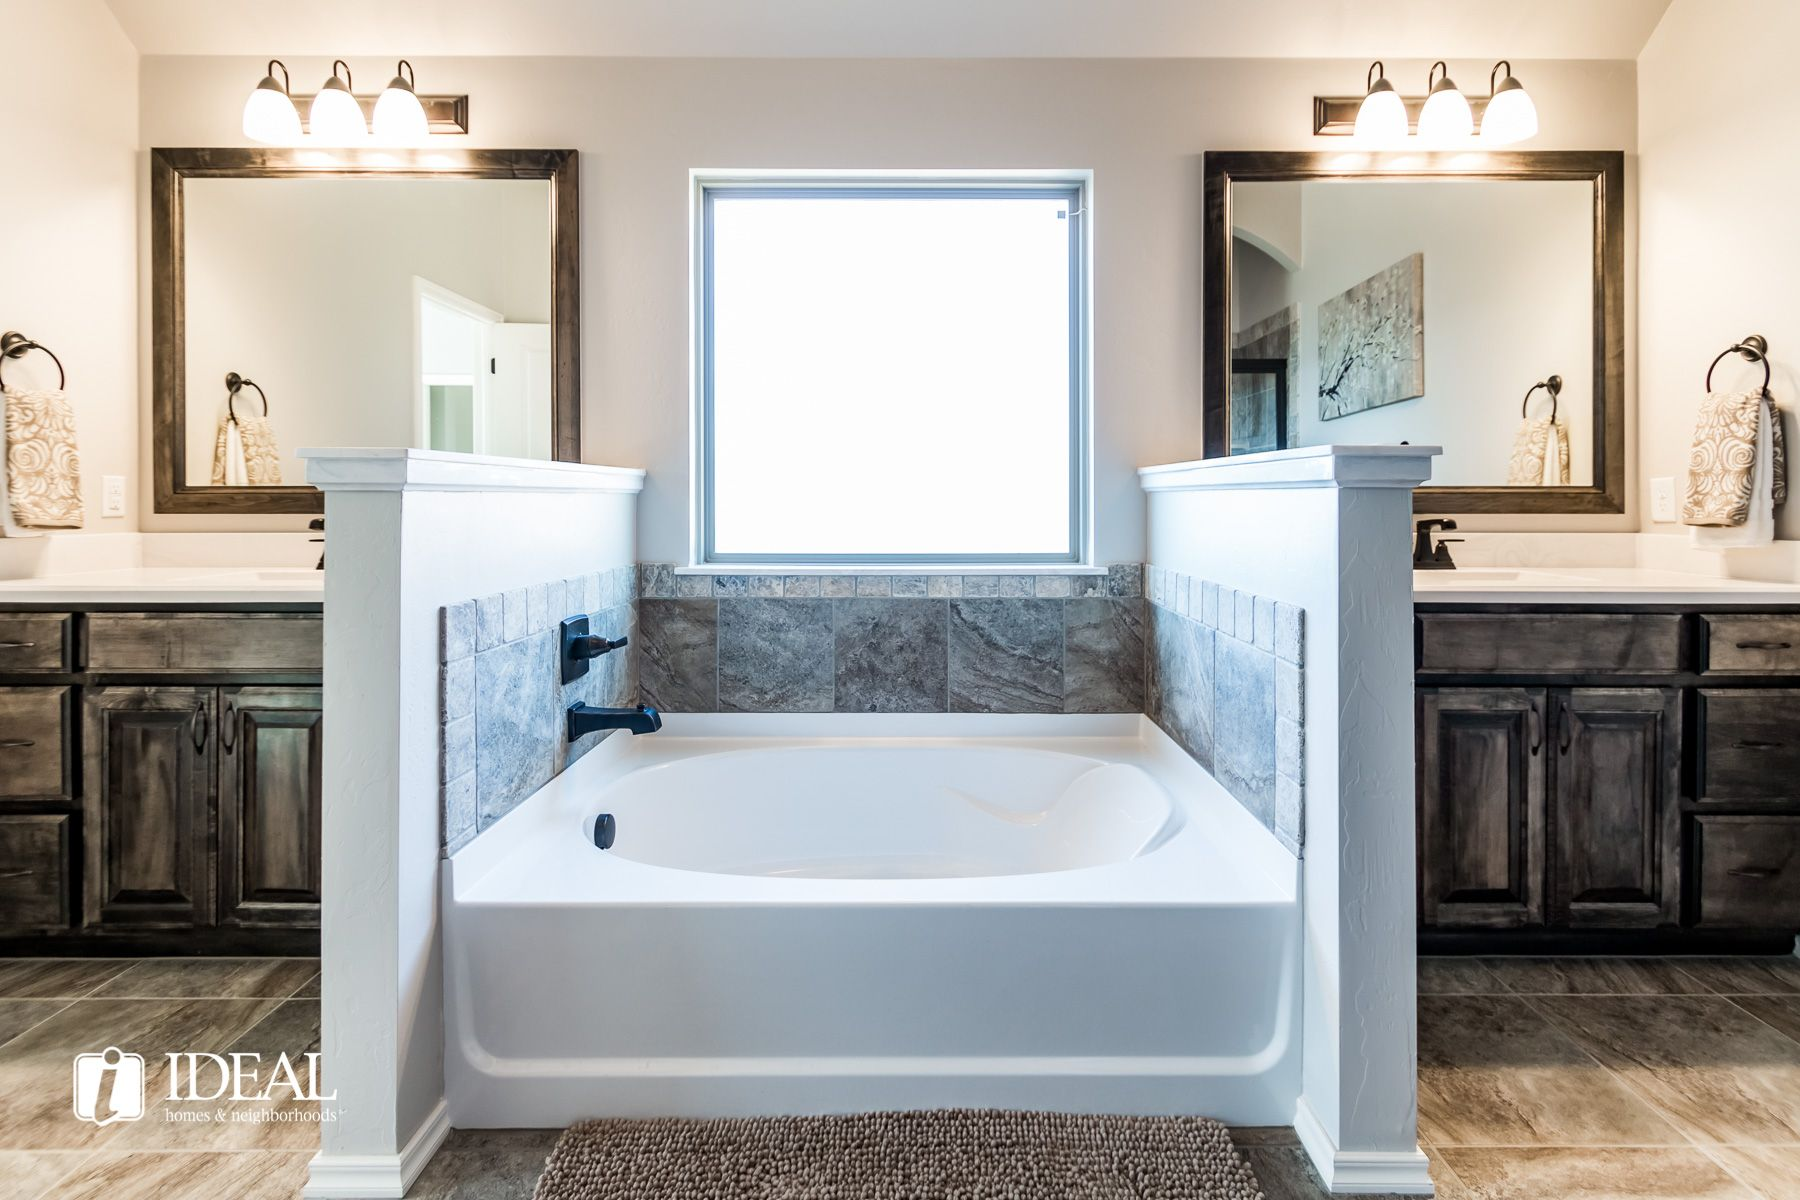 Bathroom featured in the Stafford By Ideal Homes in Oklahoma City, OK